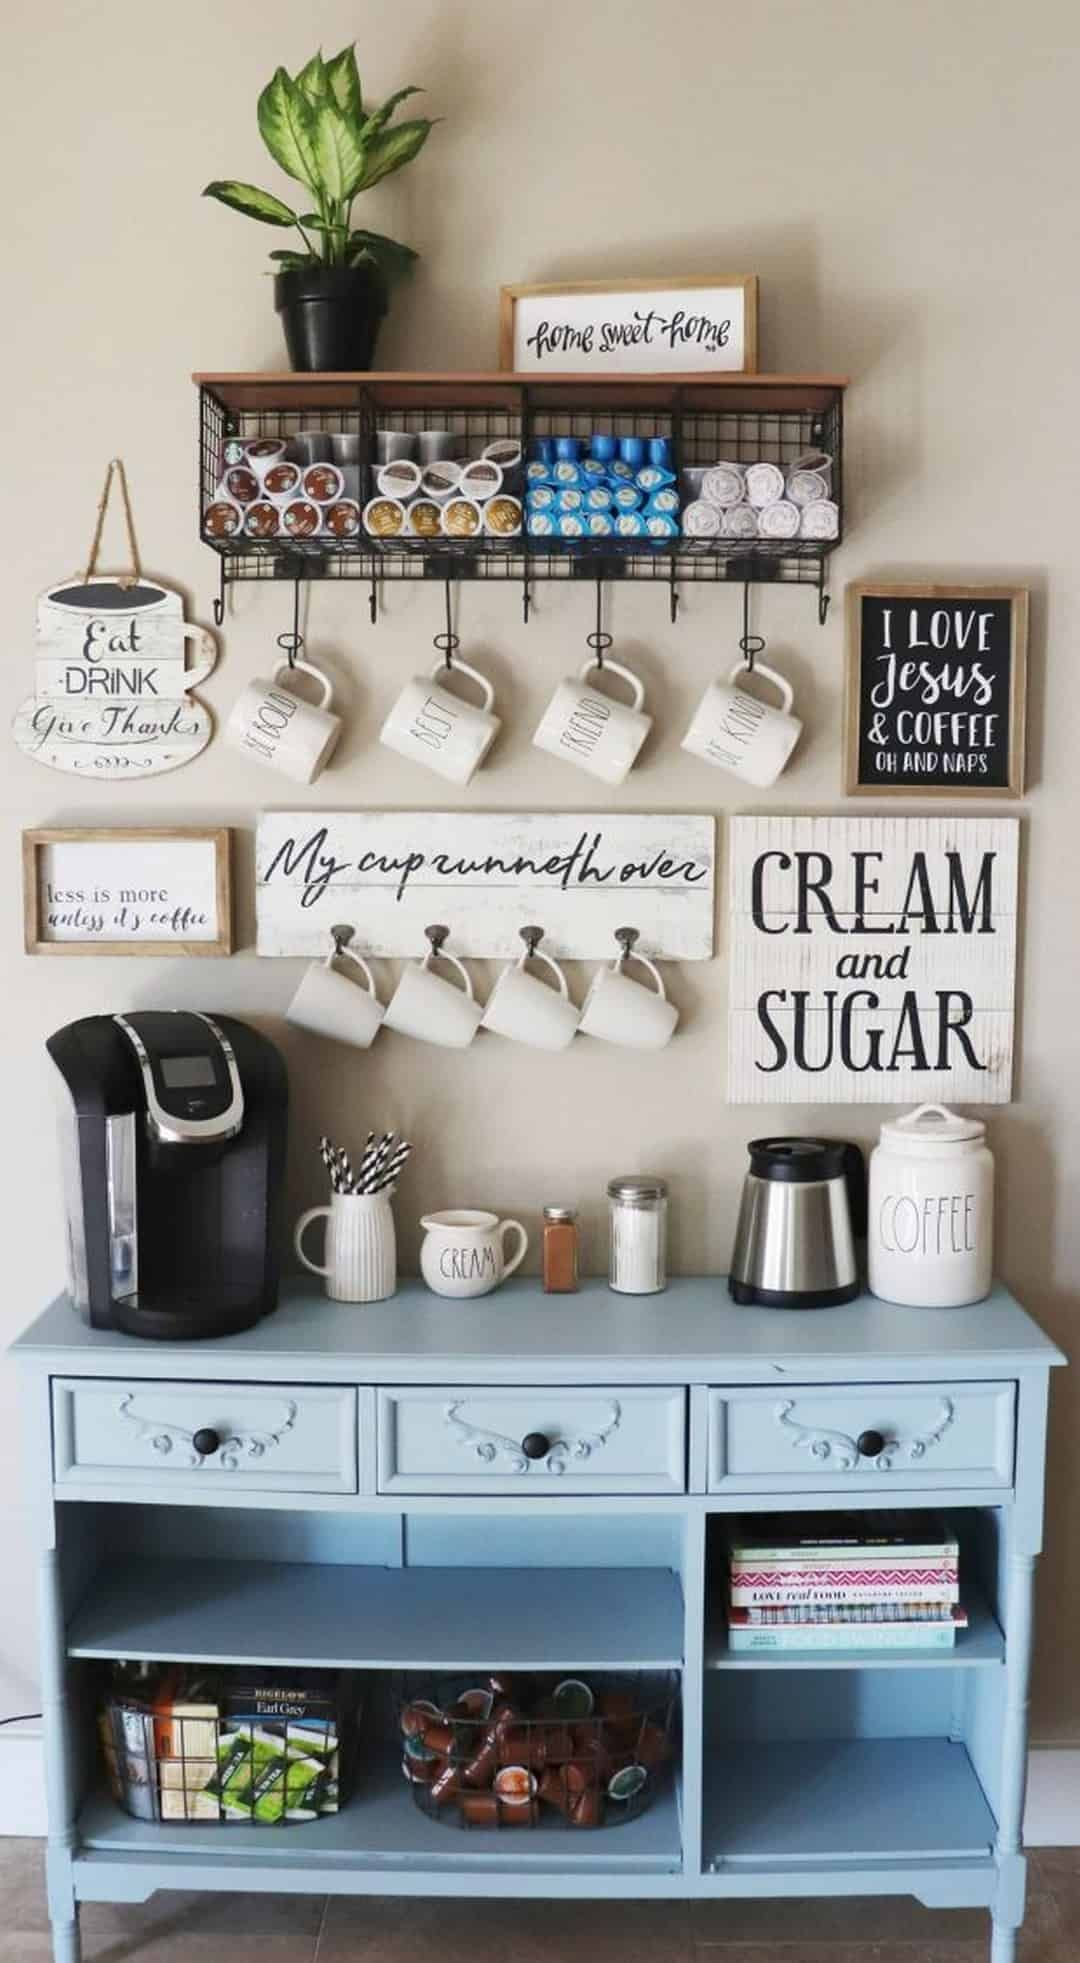 Start your day off the best way possible with a cup of coffee made from one of these amazing coffee bar ideas! #coffeebar #homedecor #DIY